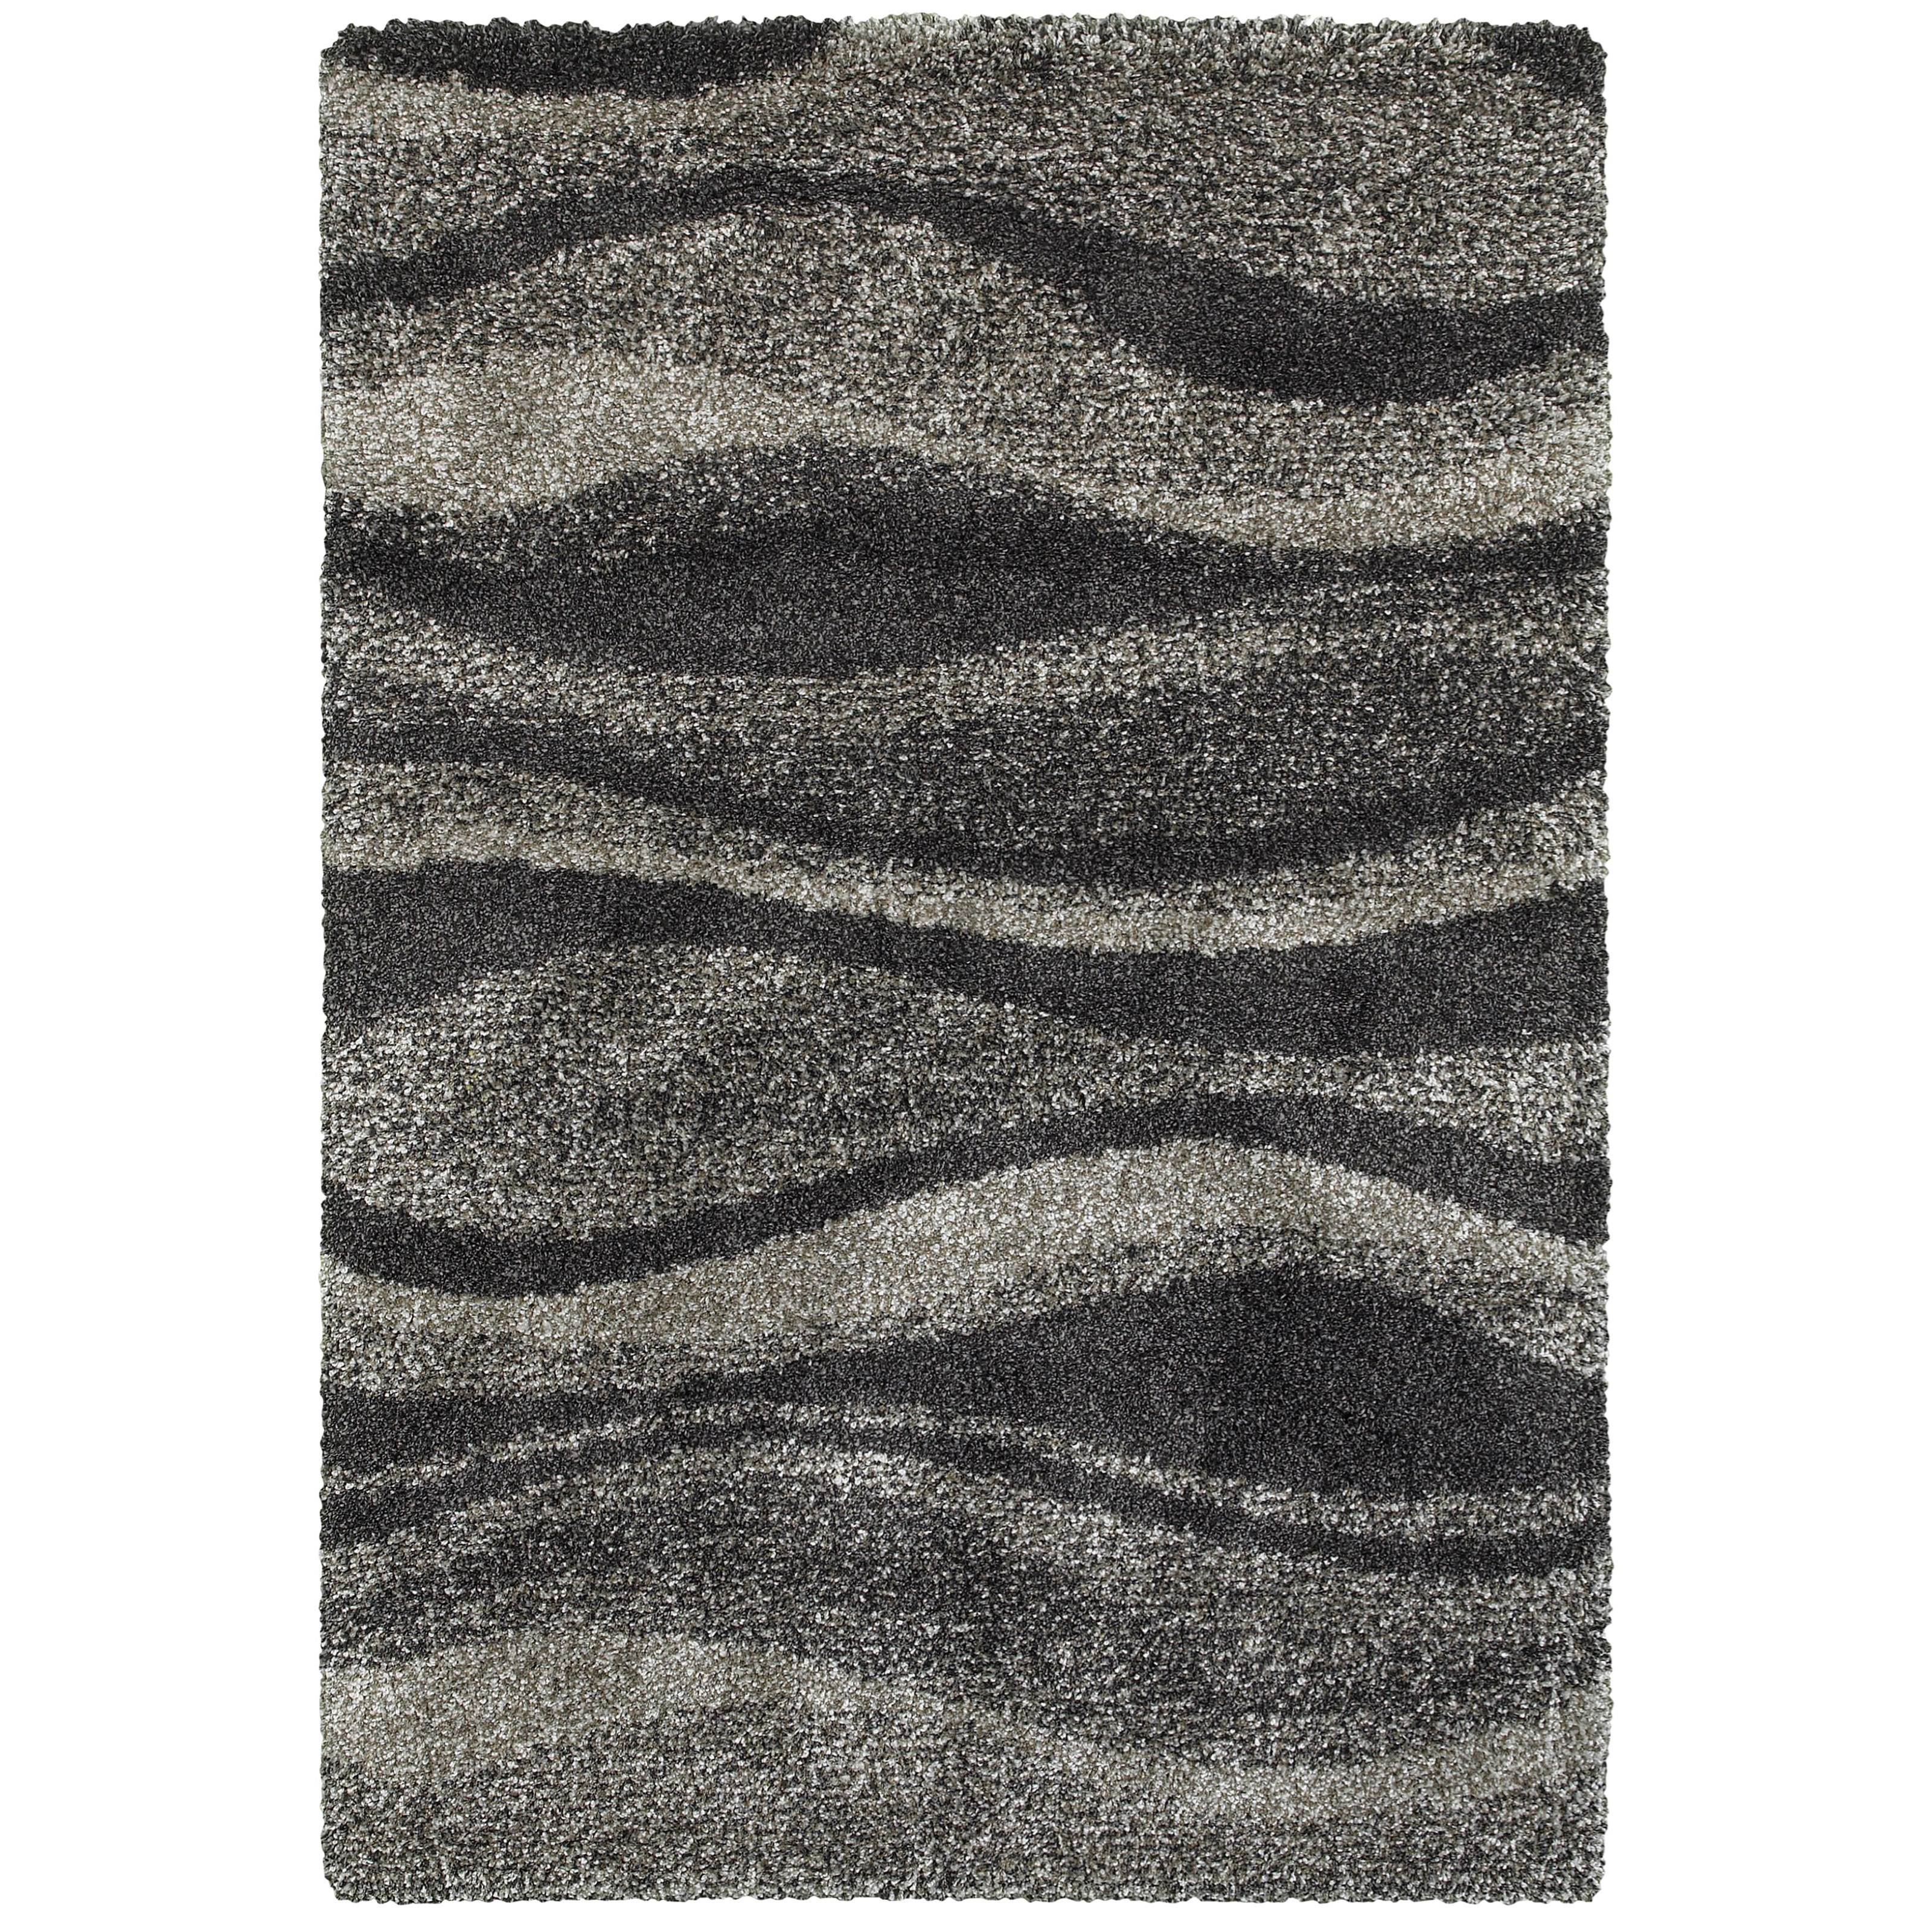 "Henderson 7'10"" X 10'10"" Shag Grey/ Charcoal Rectangle by Oriental Weavers at Darvin Furniture"